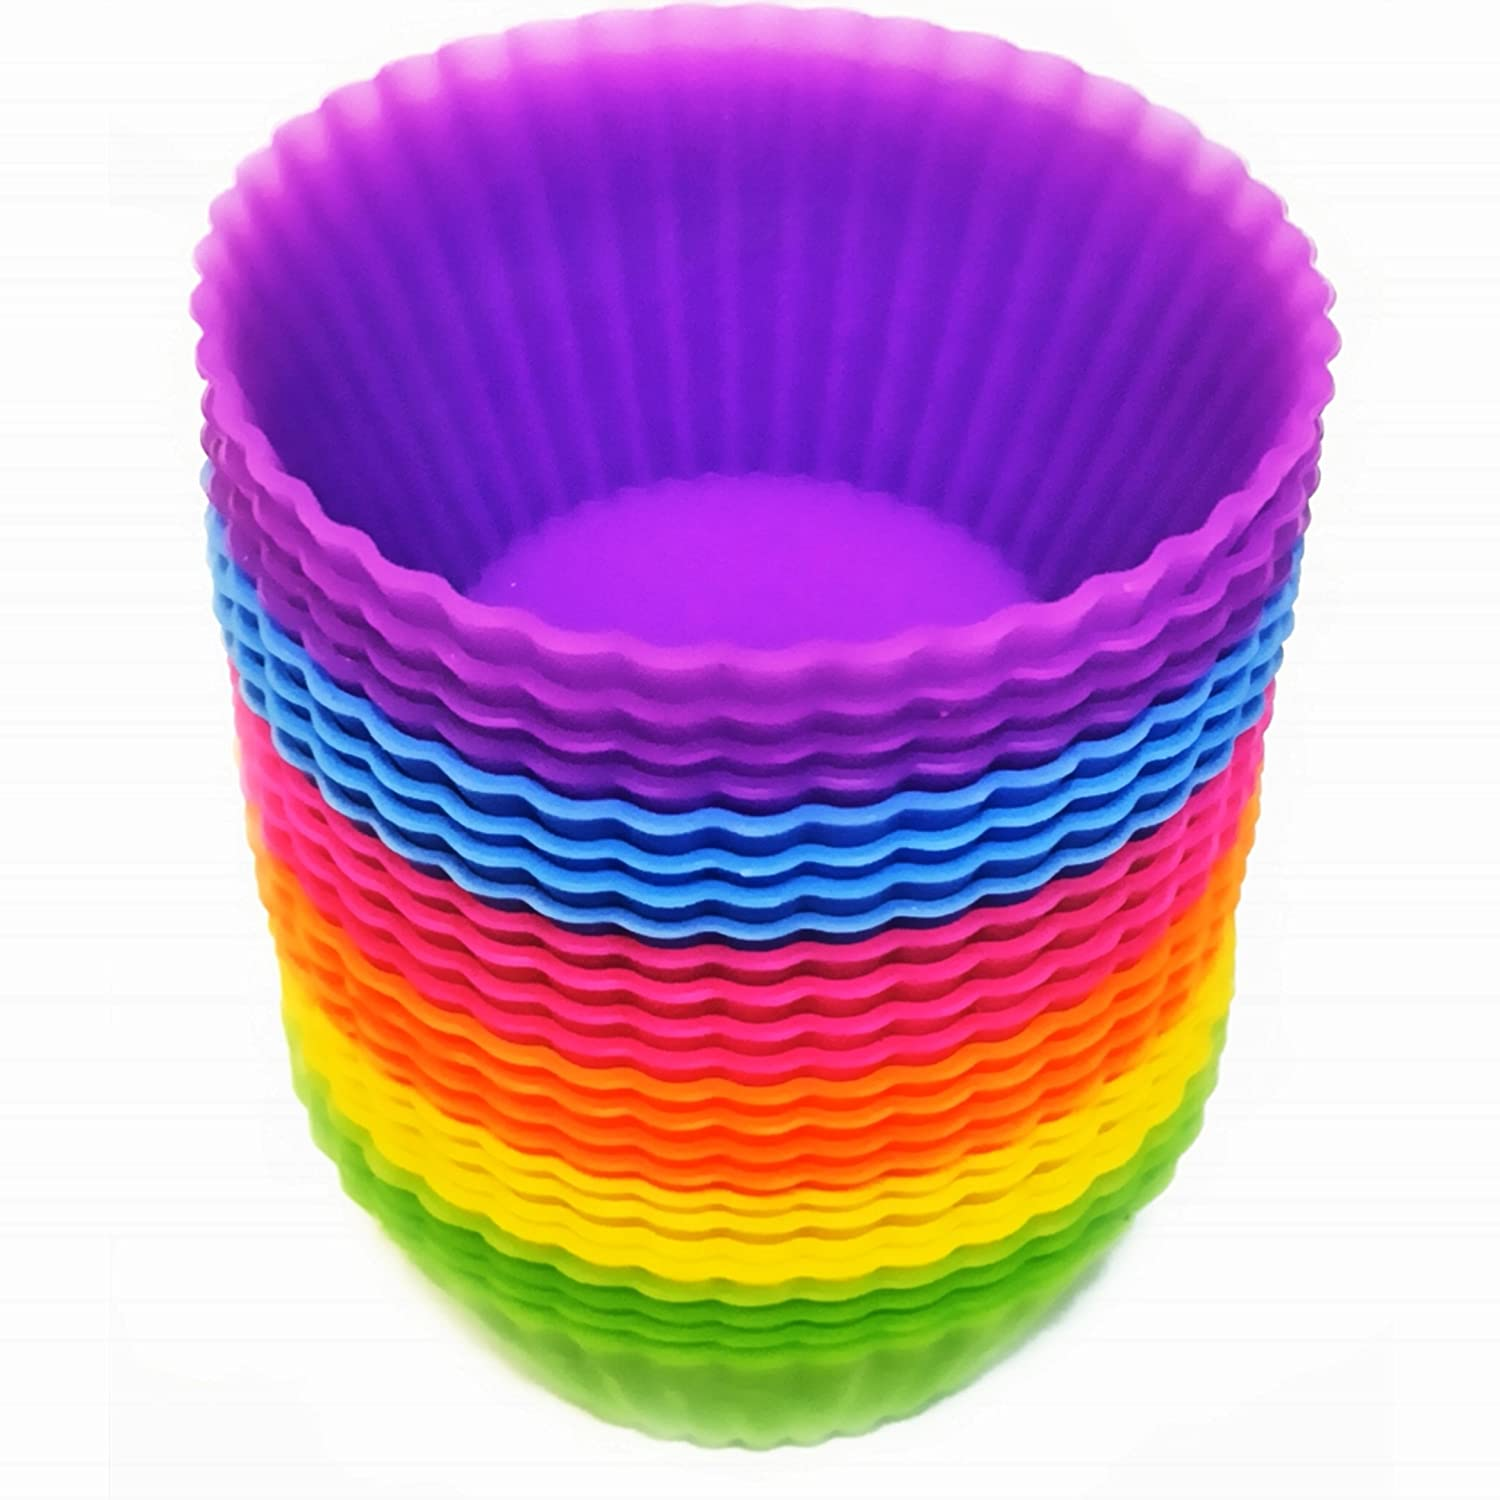 24-Pack Reusable Silicone Baking Cups, Cupcake Liners, Muffin Cups Cake Molds Sets- Non-Stick,Food Grade ,with 6 Vibrant Colors Round Puffware